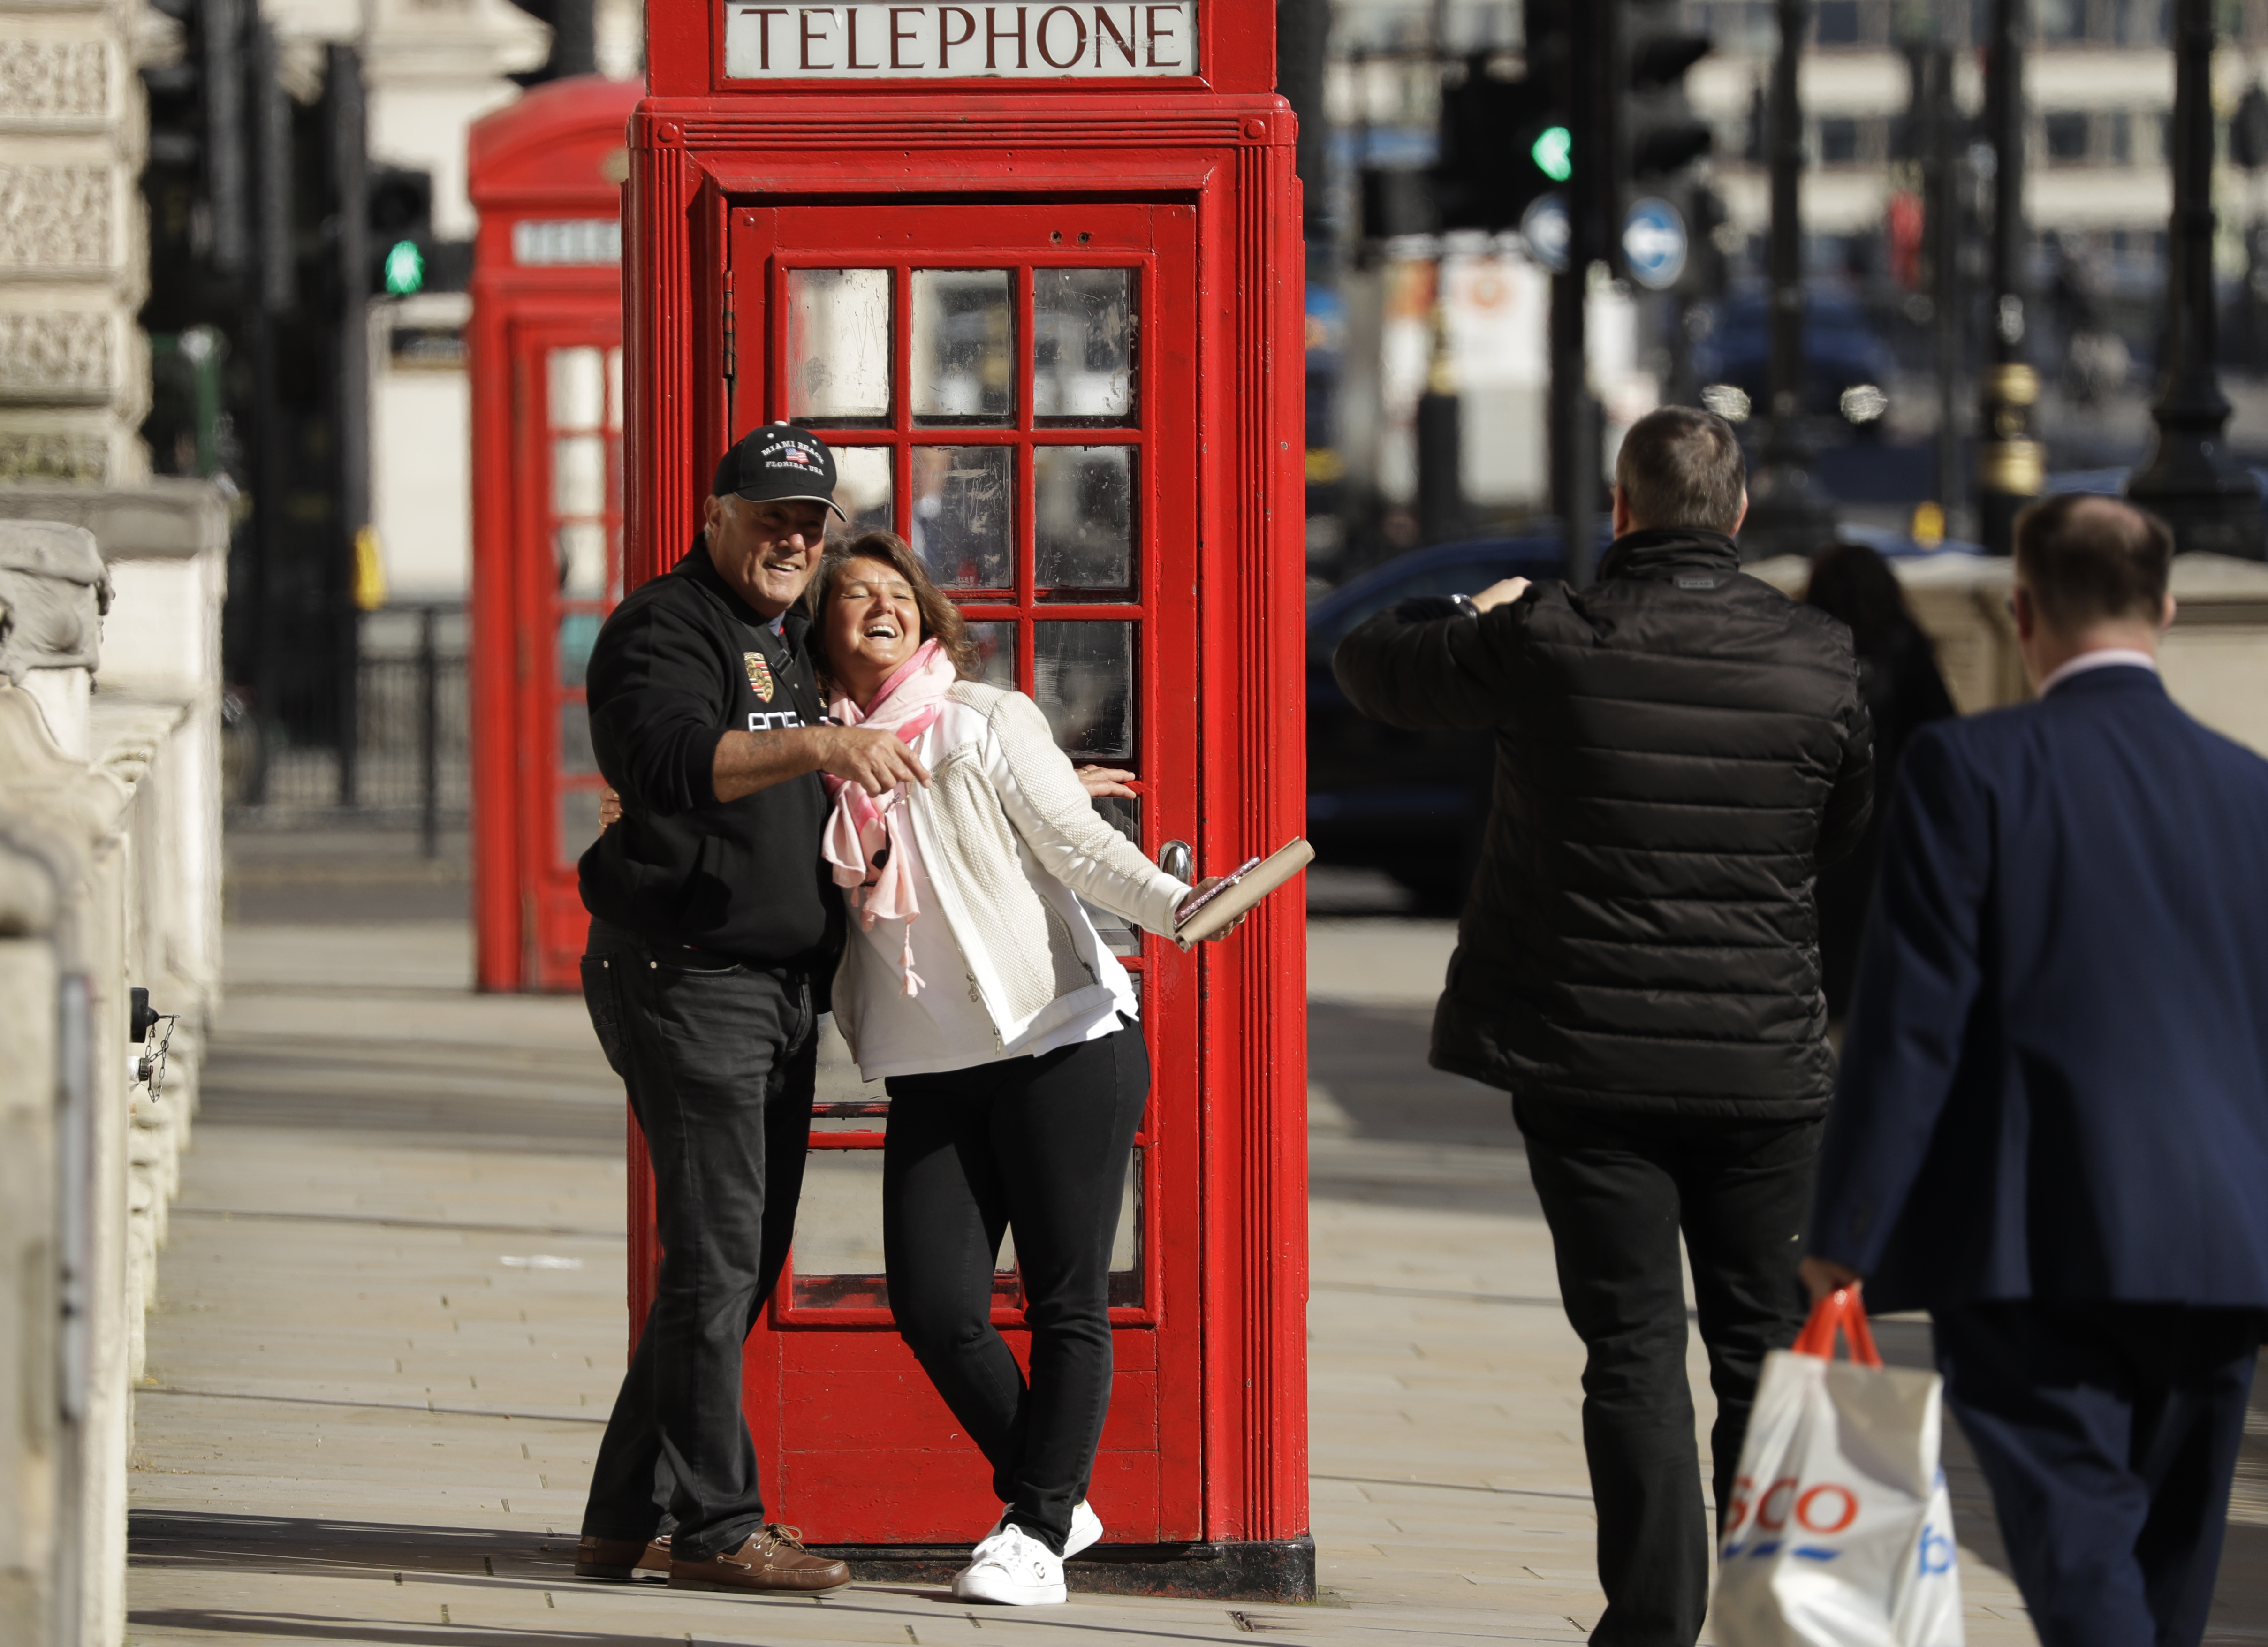 Two tourist have their photo taken next to a traditional red telephone box in Westminster, London, on March 23, 2020.